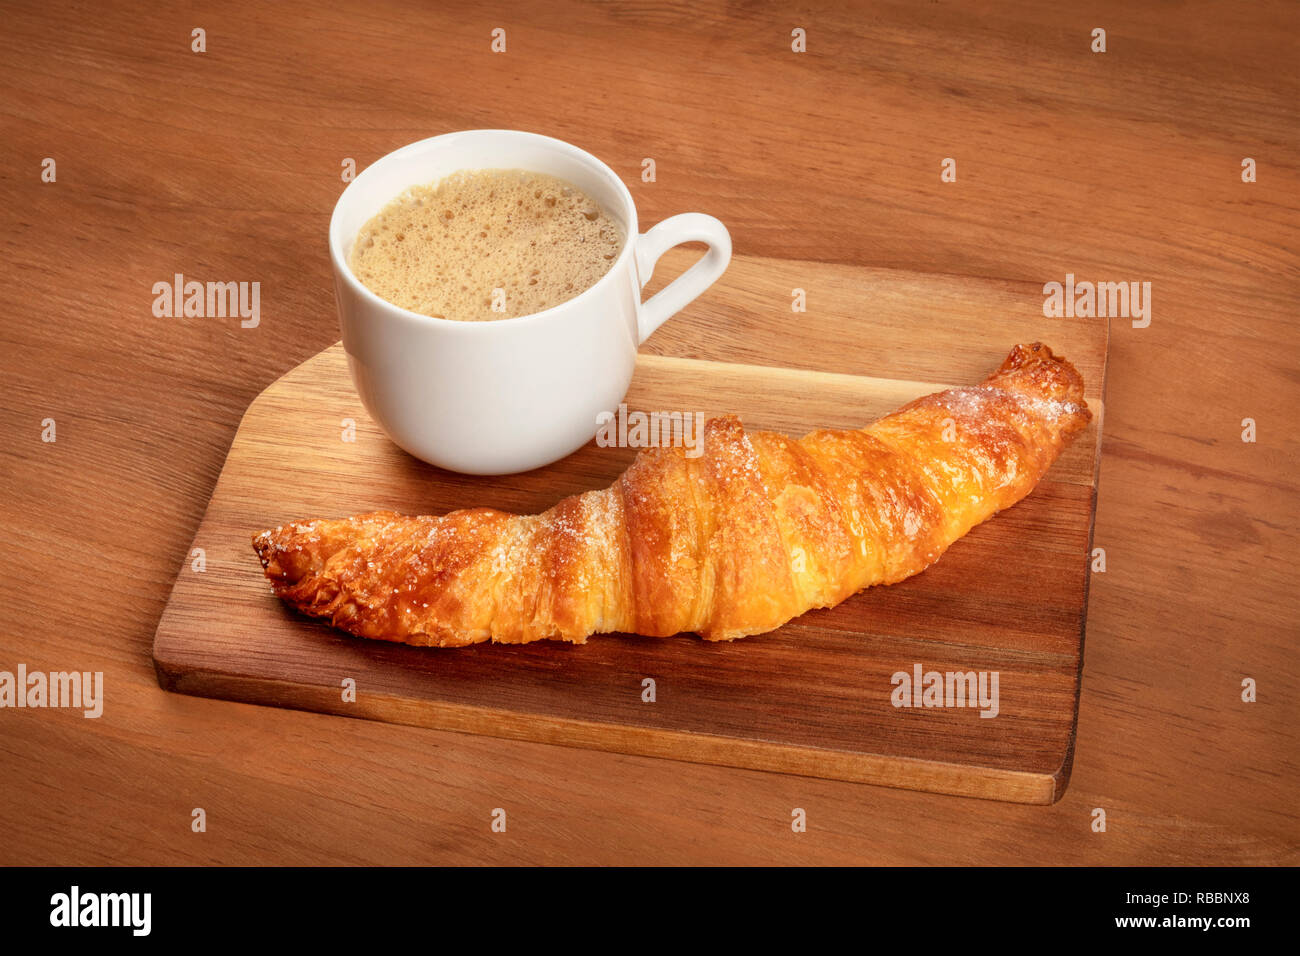 A photo of a croissant on a dark rustic wooden background with coffee and a place for text - Stock Image